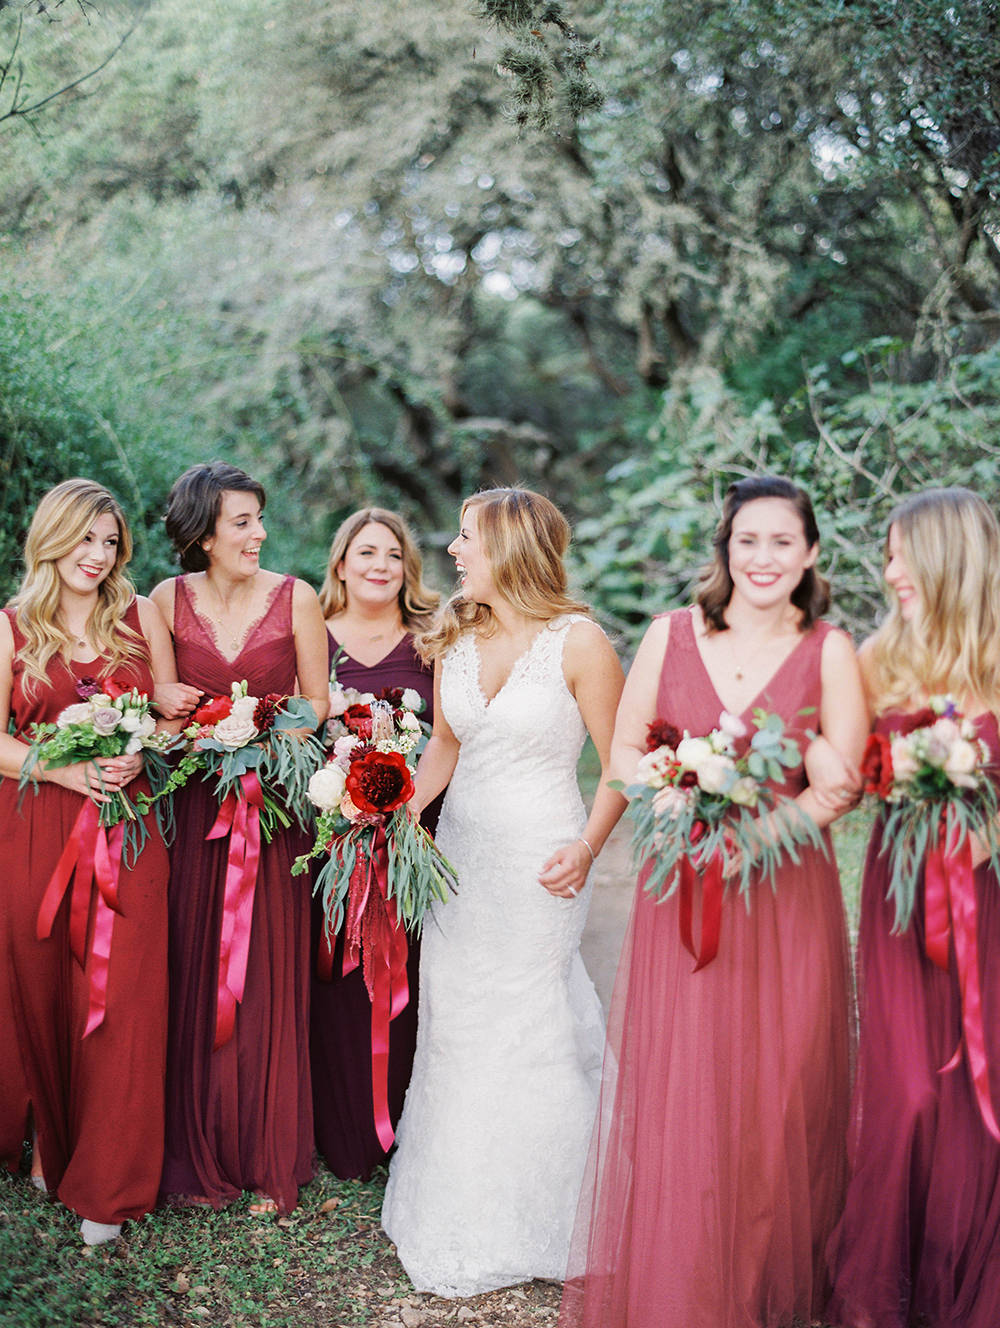 red bridesmaid dresses - photo by Honey Gem Creative http://ruffledblog.com/hill-country-garden-wedding